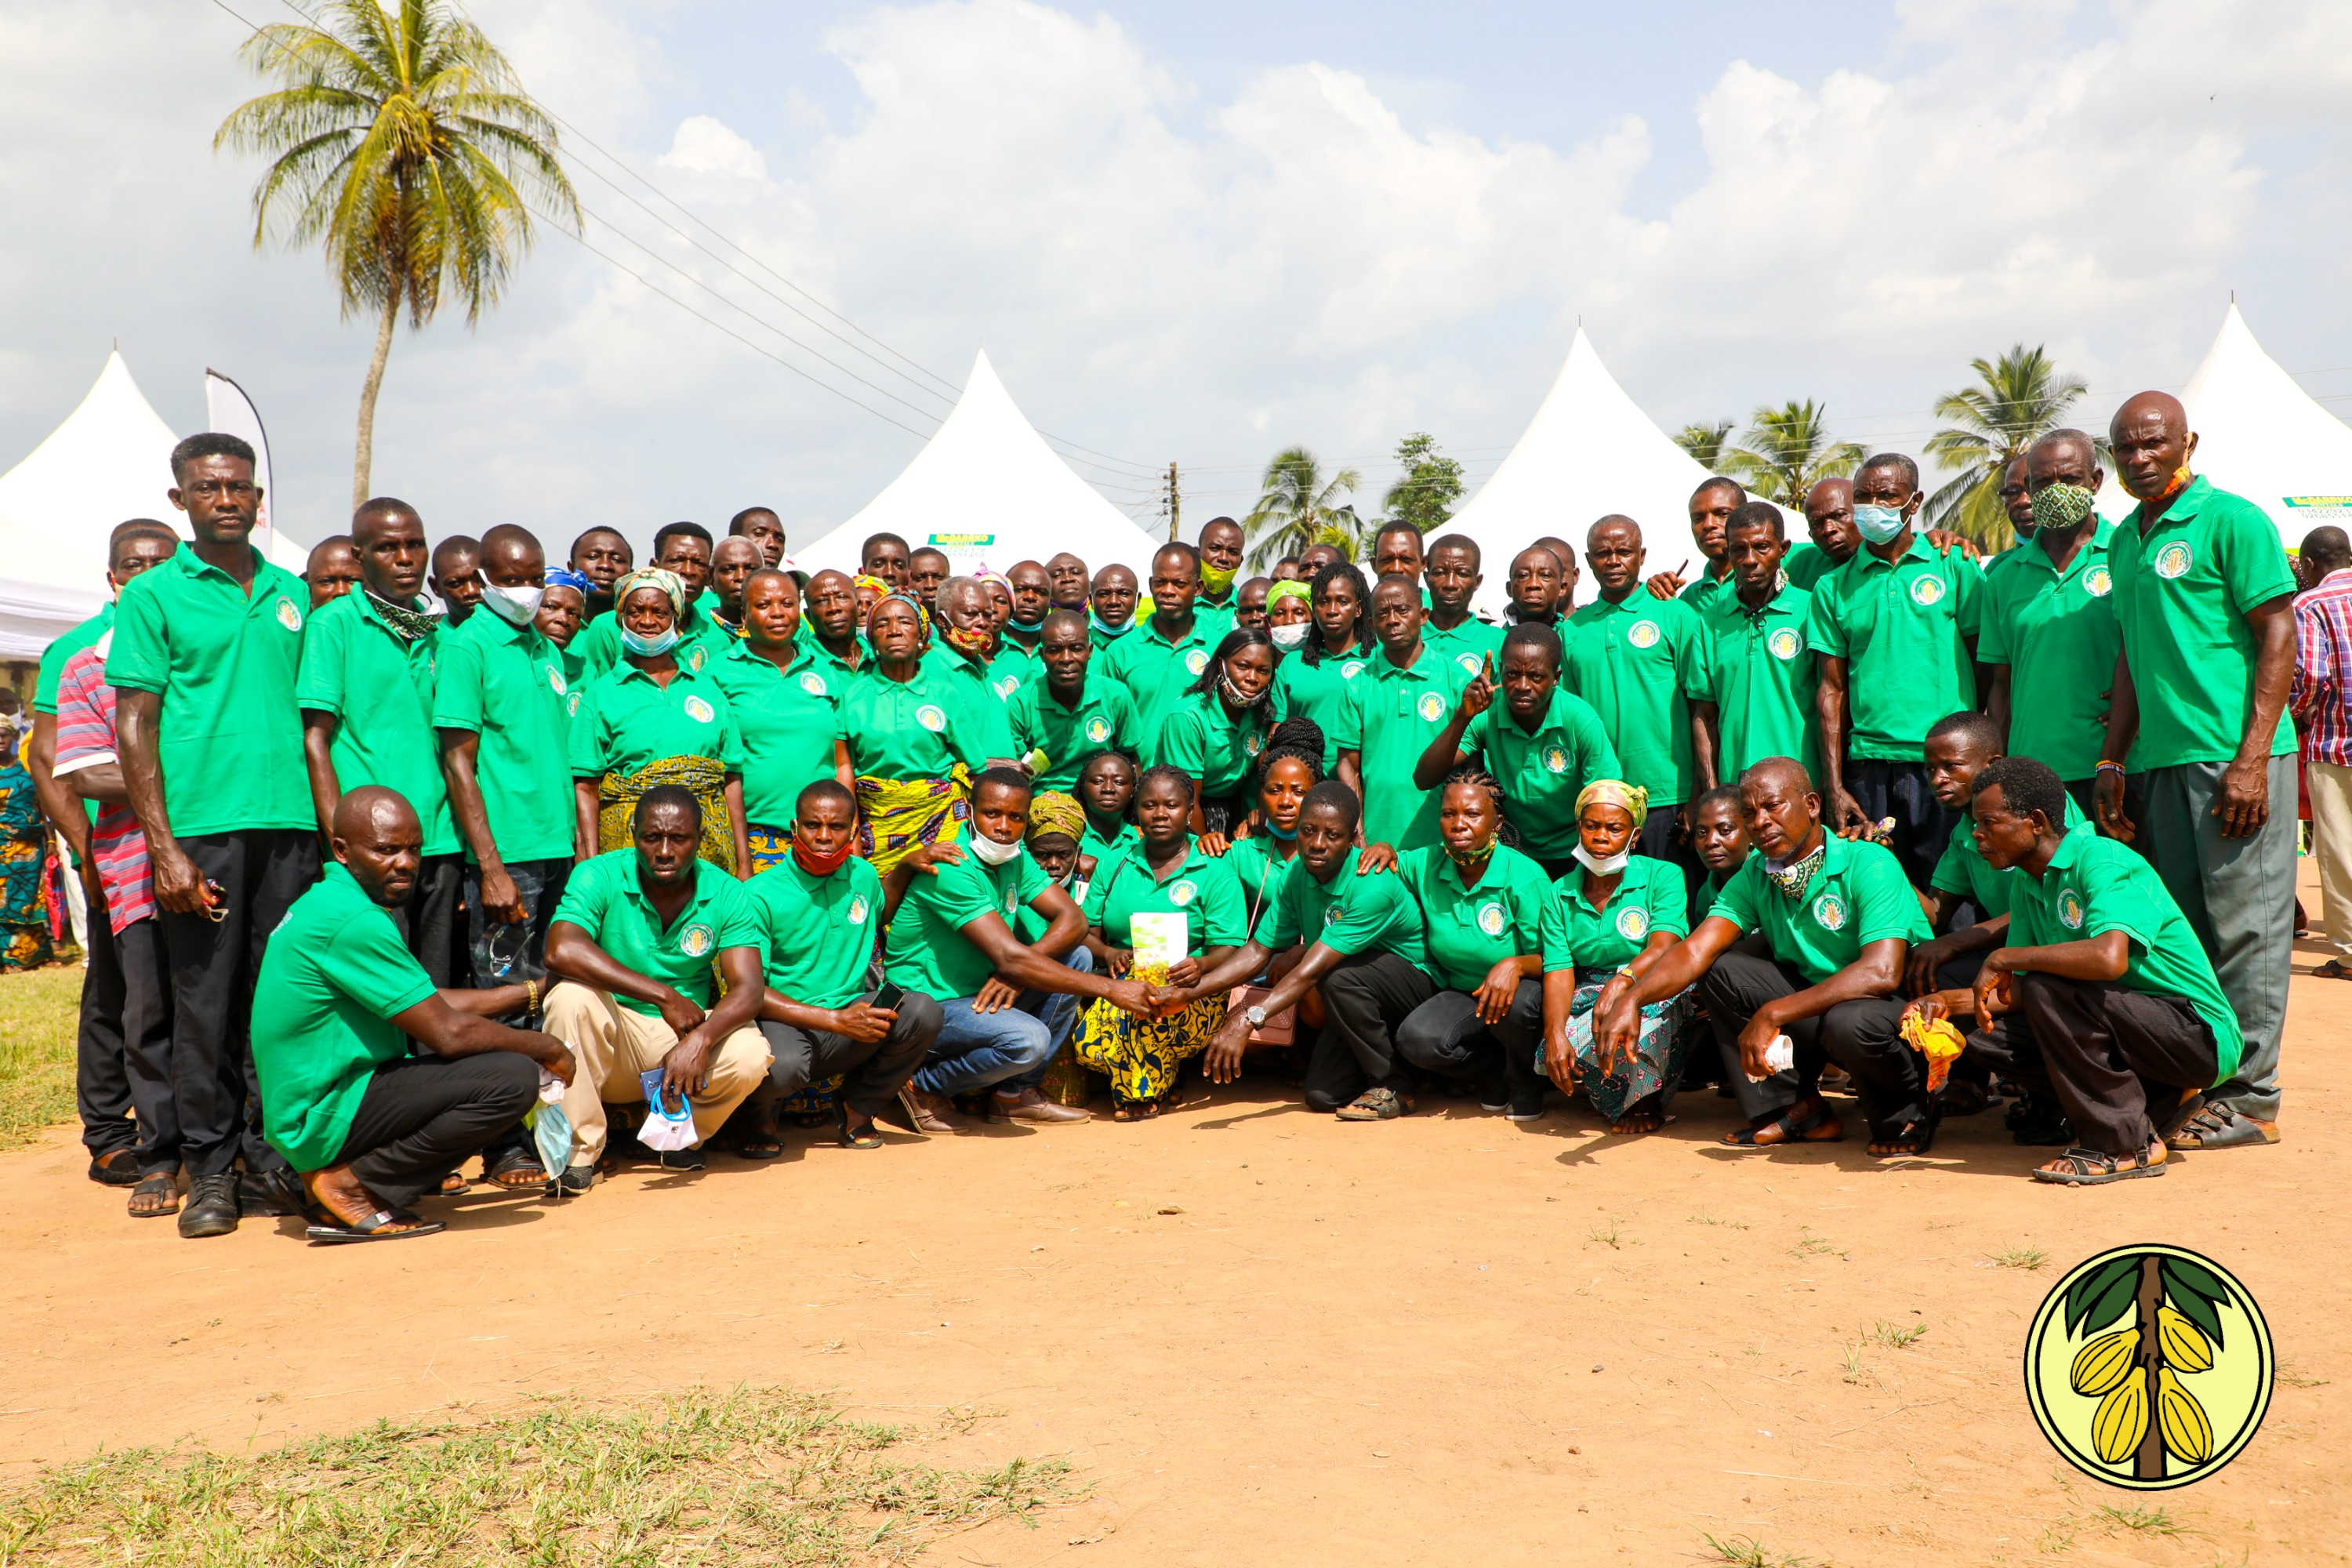 OPERATION 60 PODS PER TREE LAUNCHED AT NANKESE